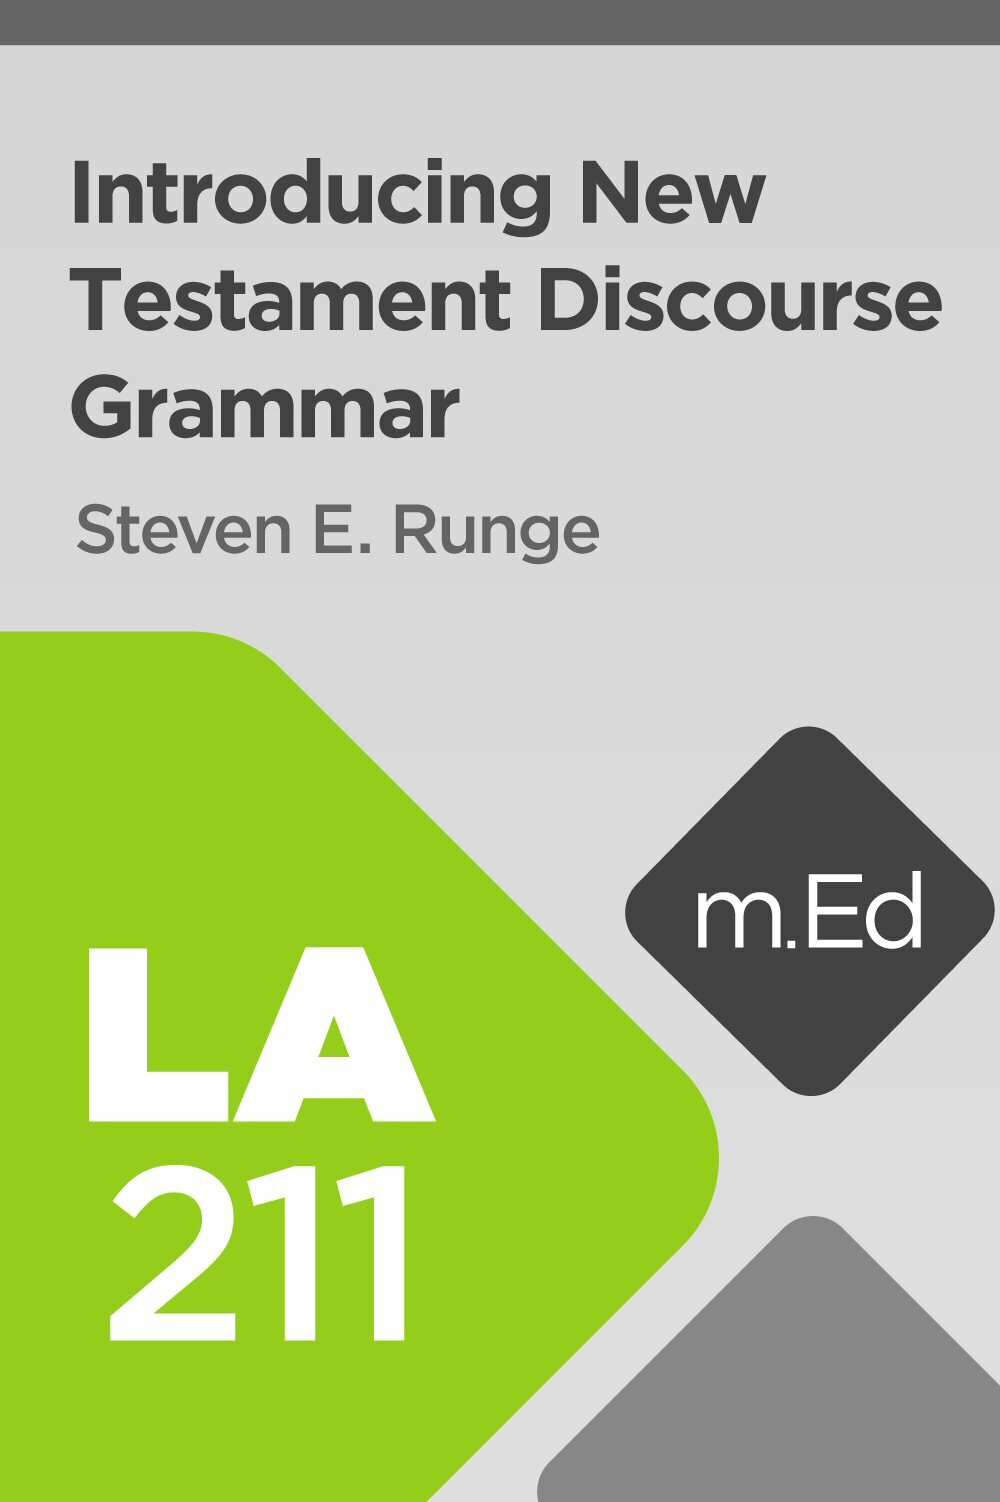 Mobile Ed: LA211 Introducing New Testament Discourse Grammar (6 hour course)